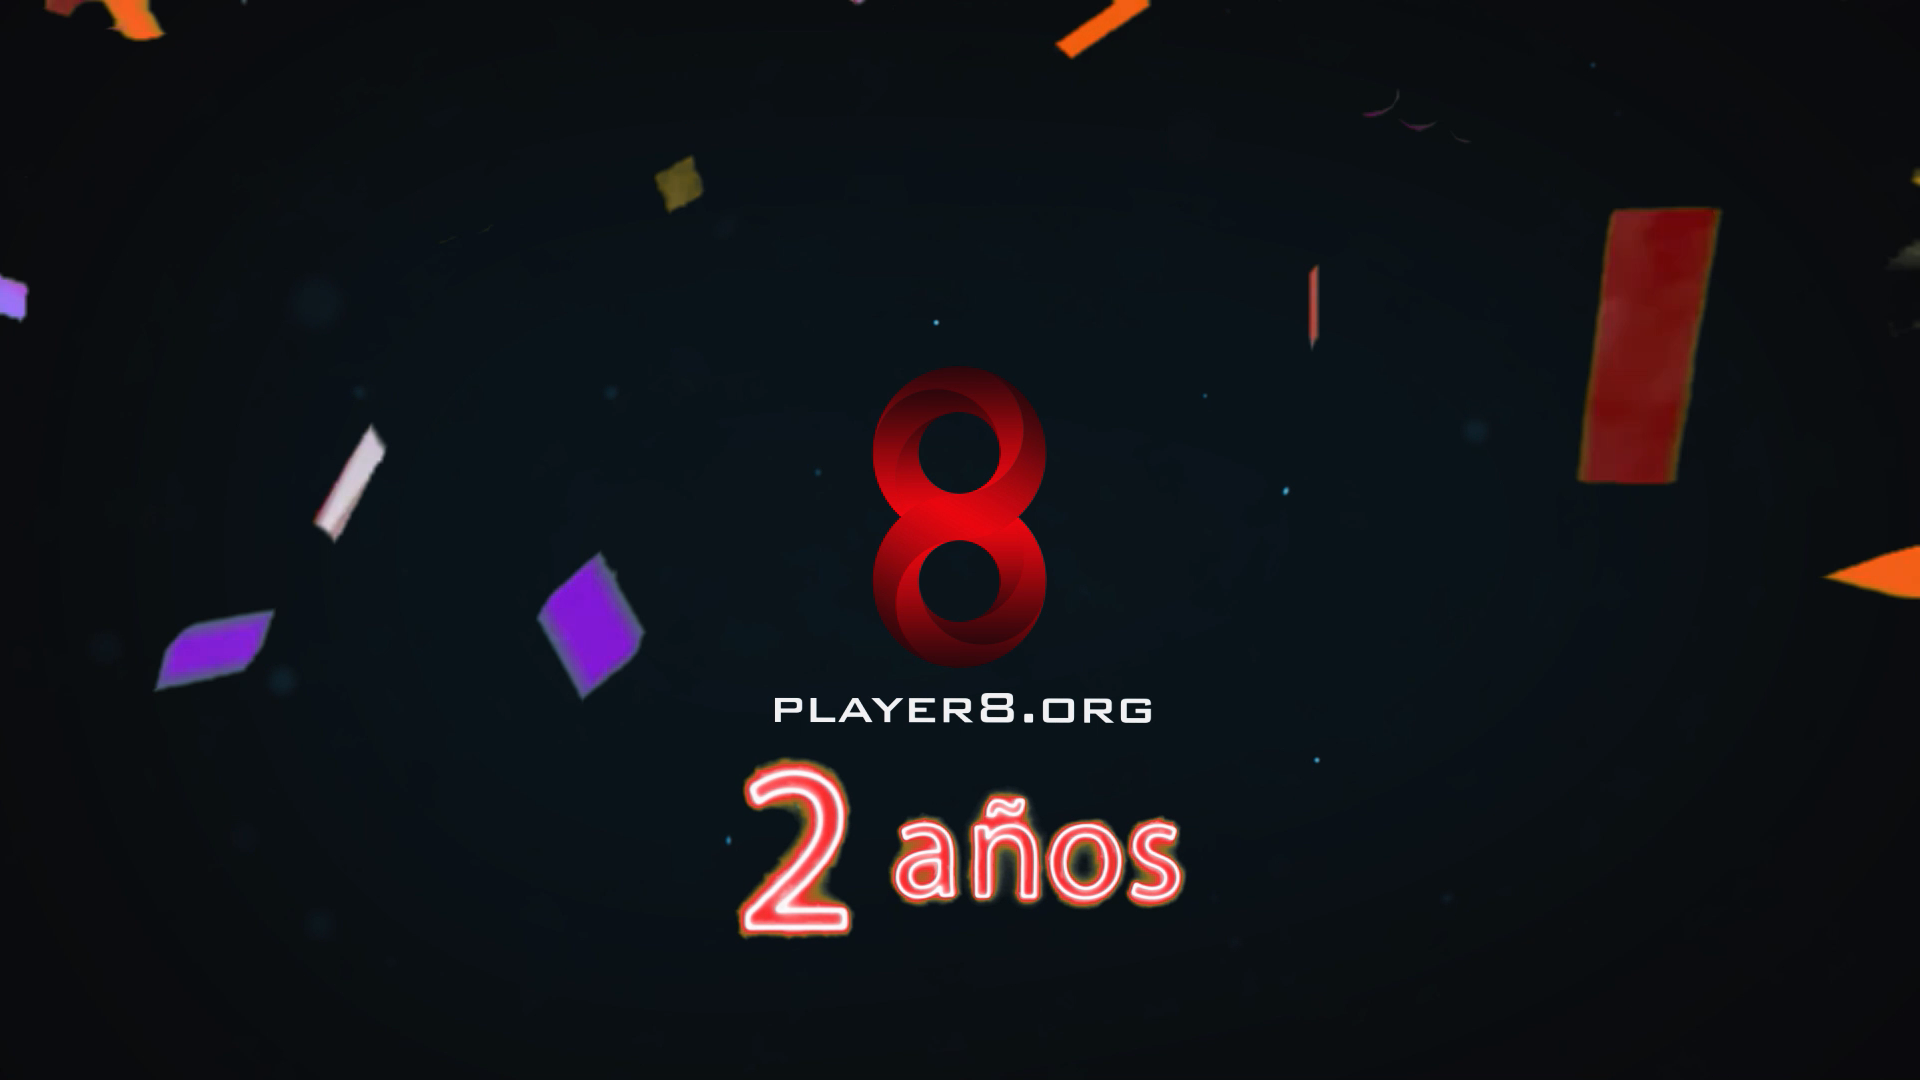 Player8.org